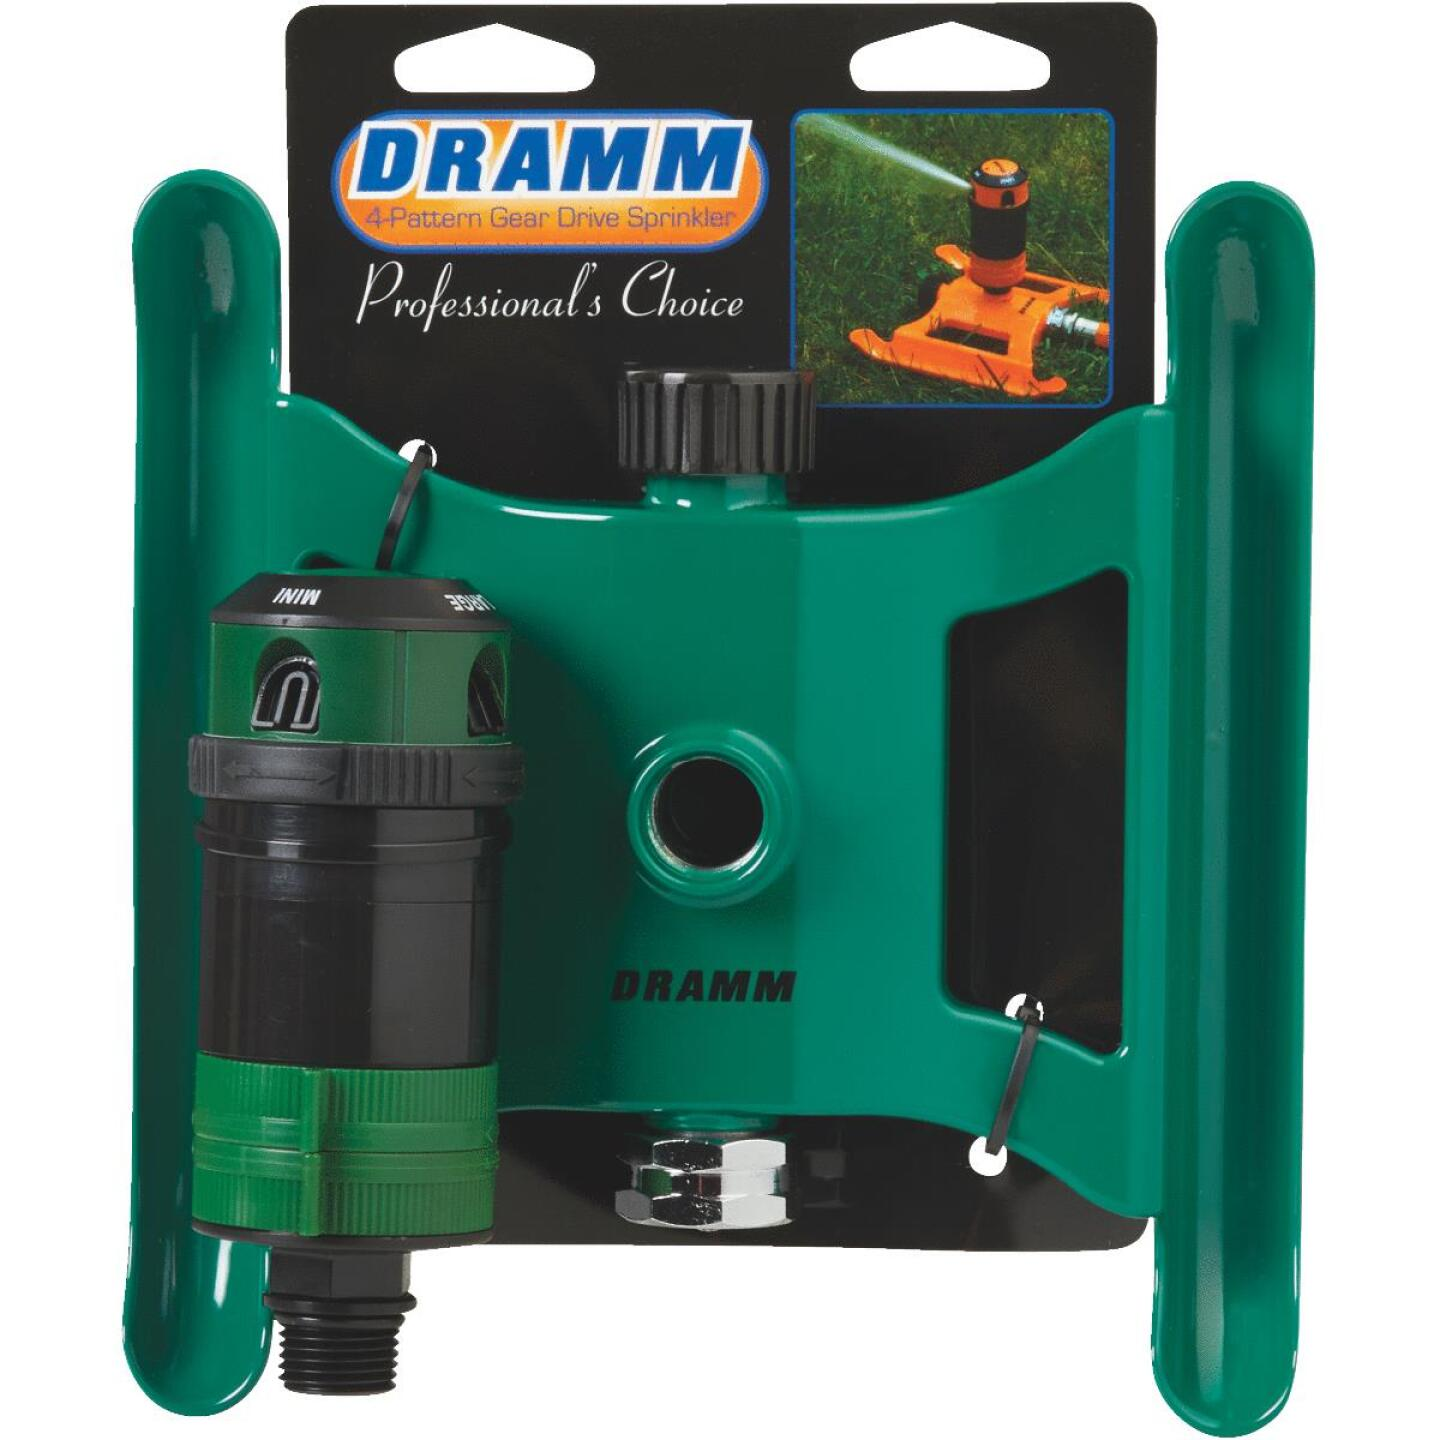 Dramm Metal Adjustable Green Gear Drive Sprinkler Image 2